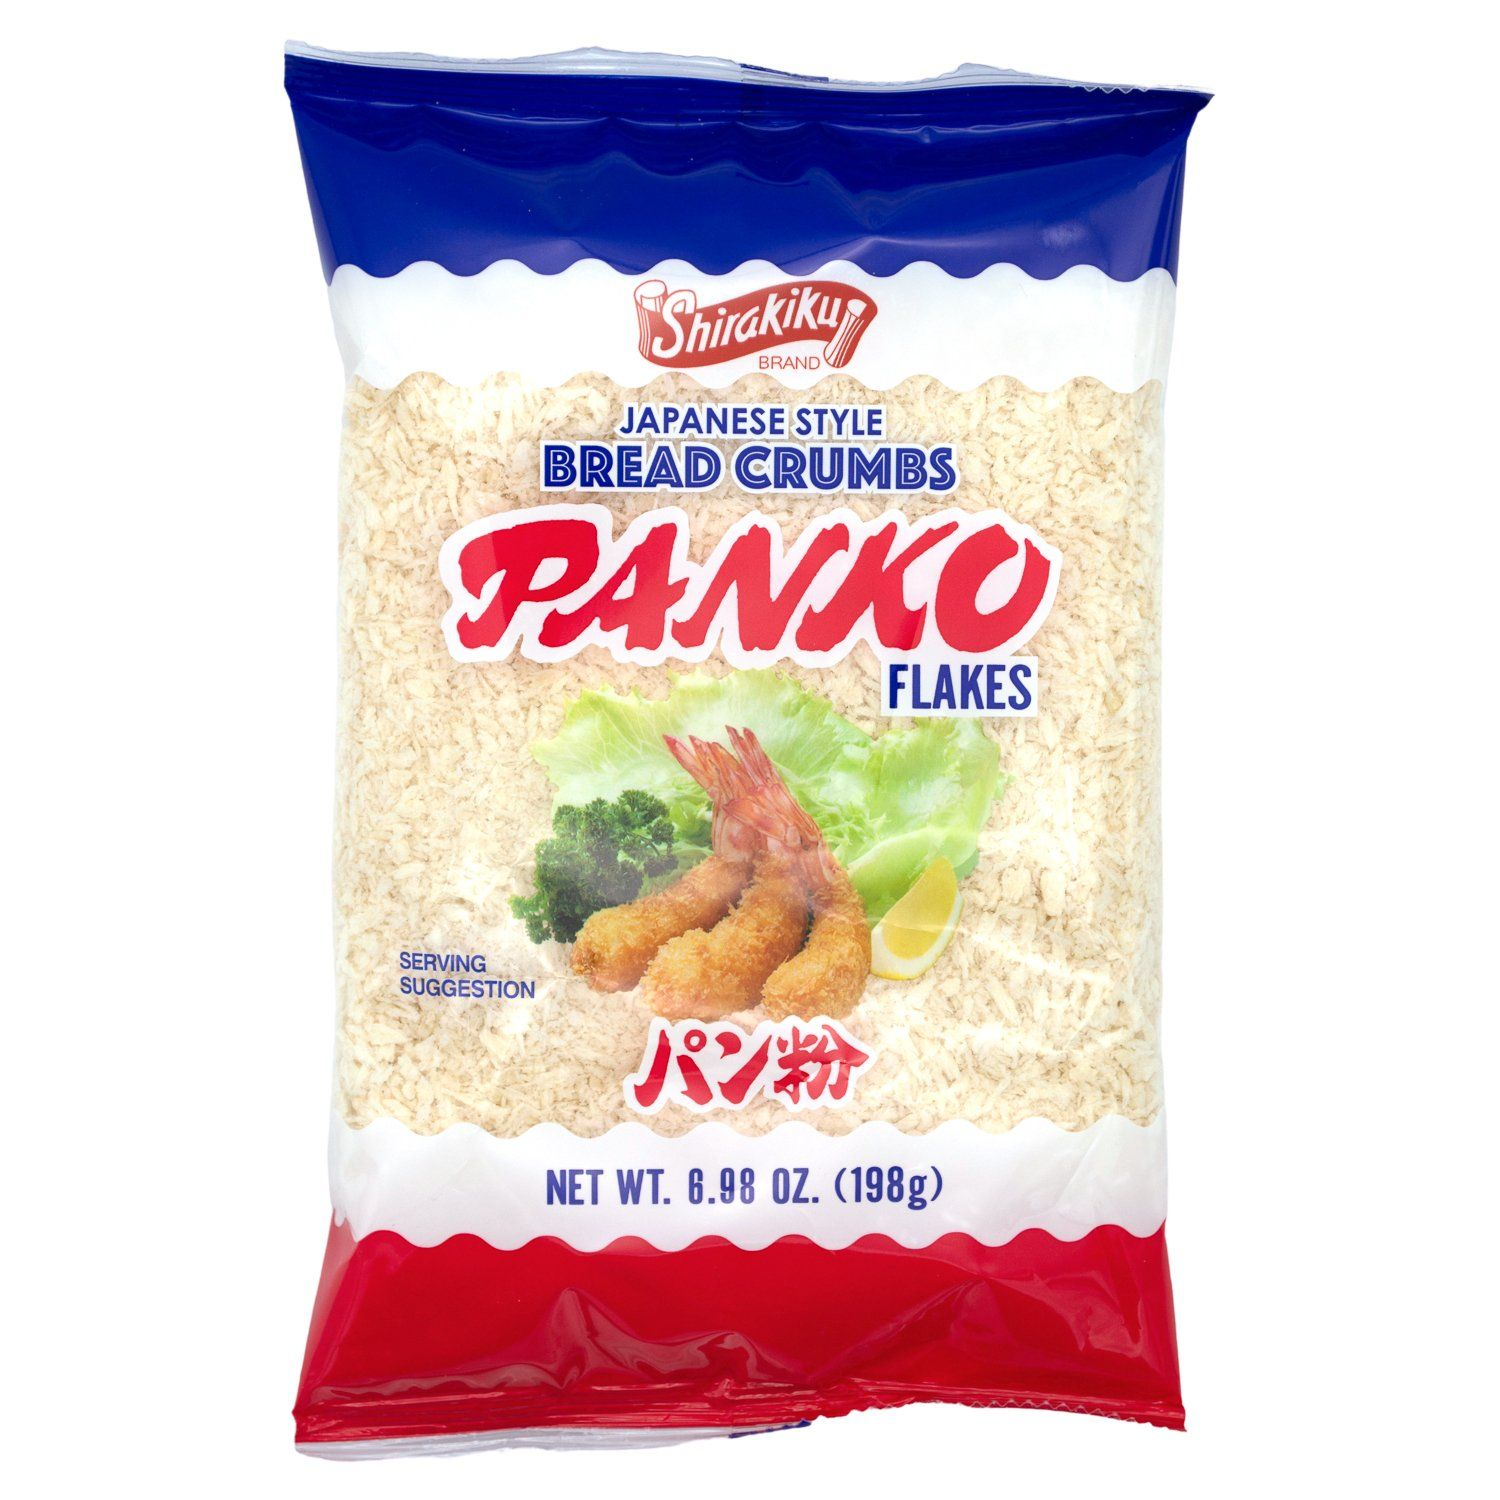 Shirakiku Japanese Bread Crumbs, Panko Flakes Shirakiku Original 6.98 Ounce